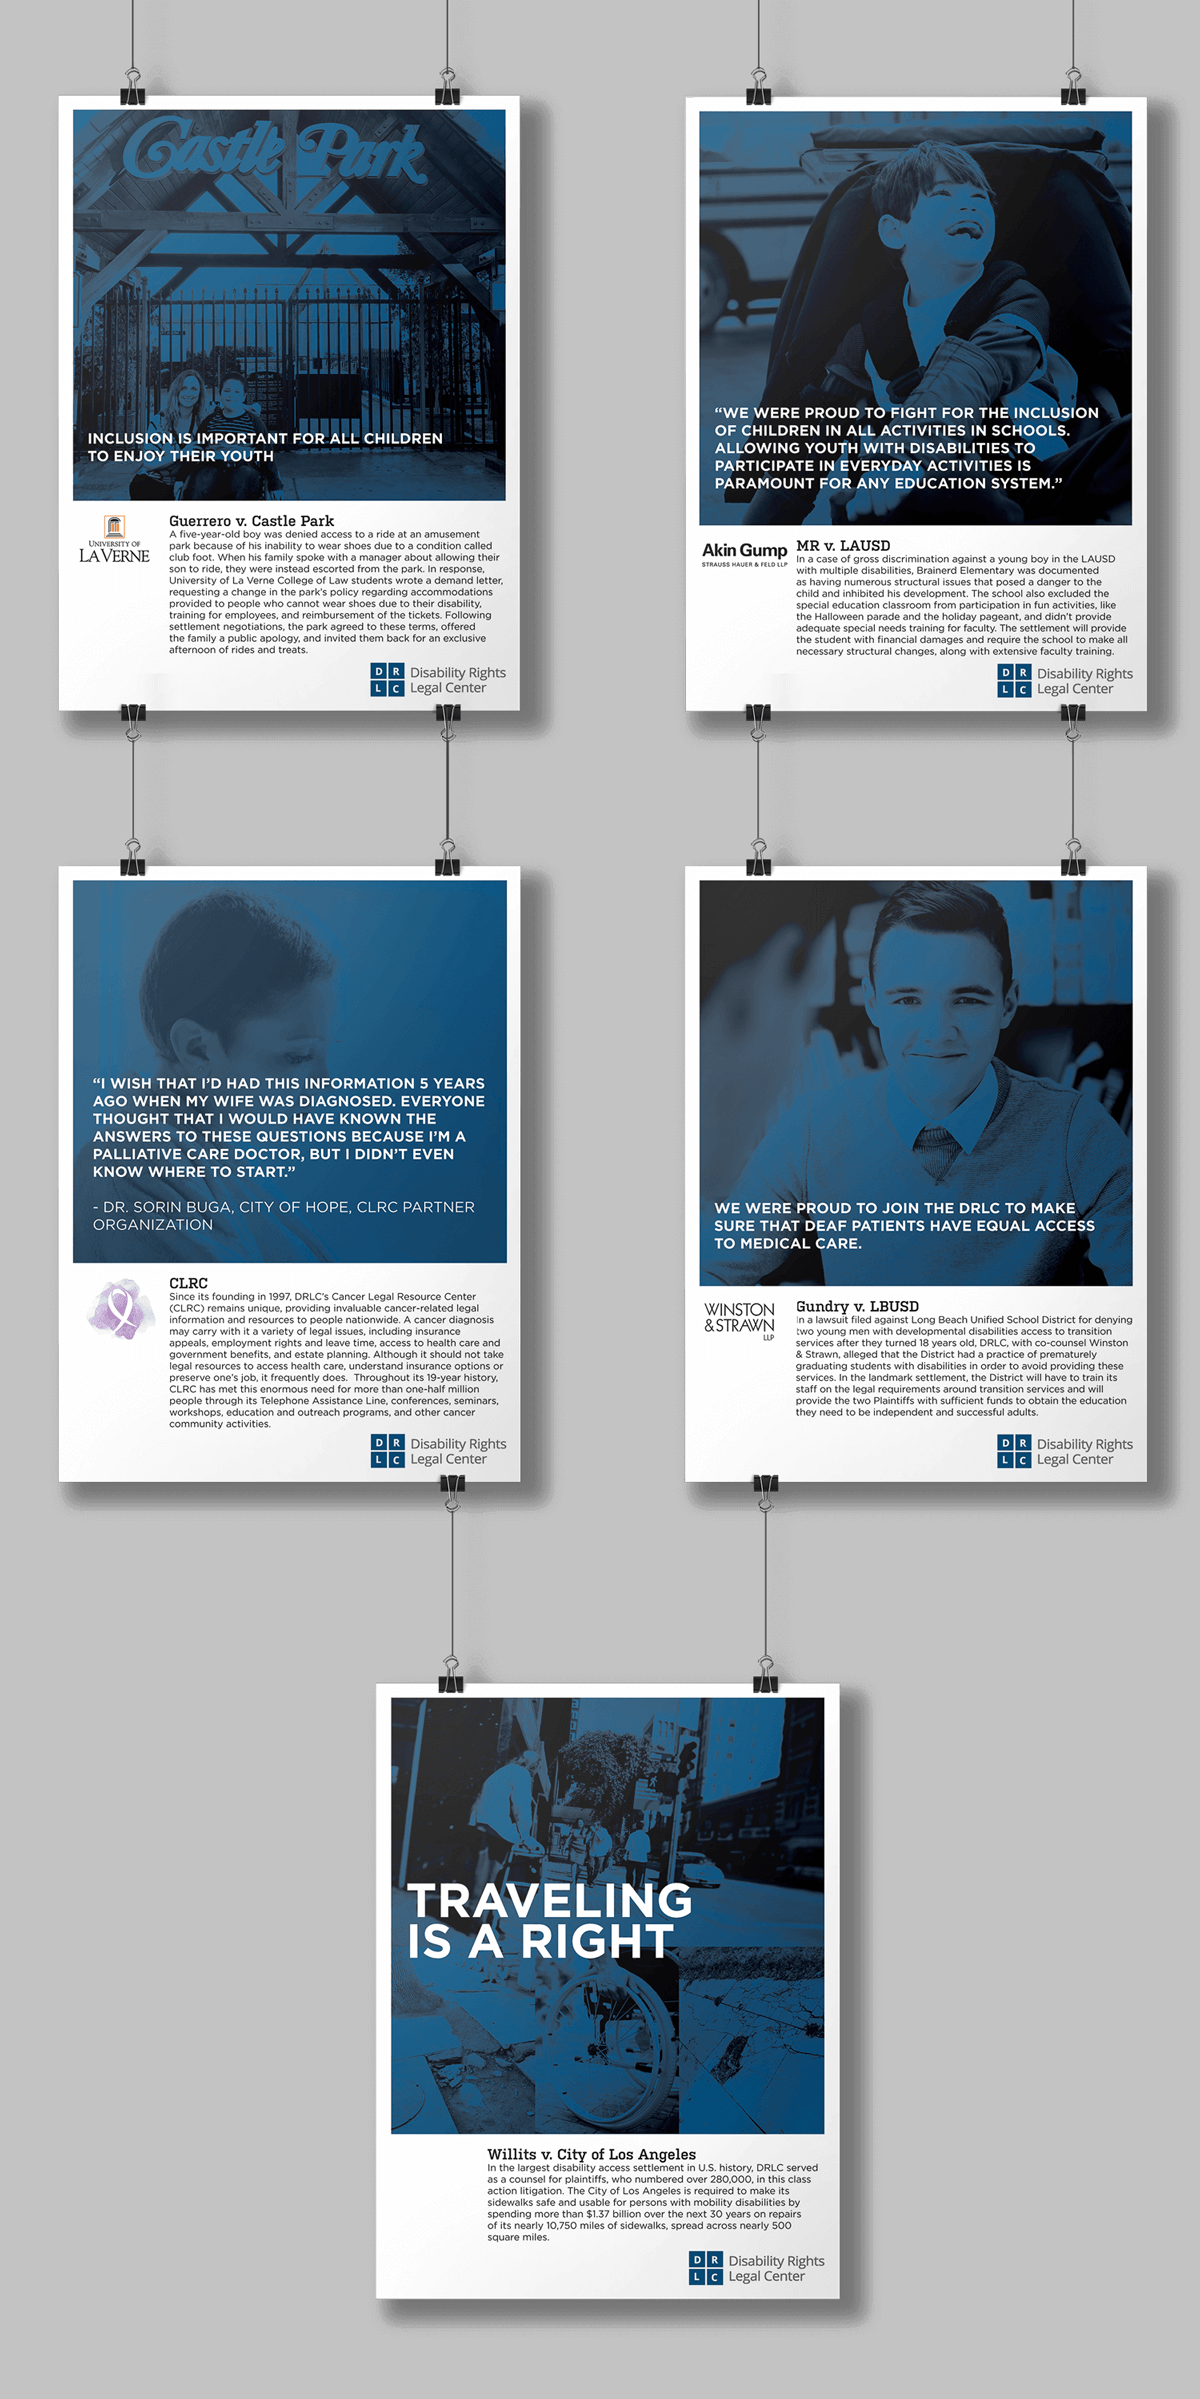 disability rights legal center mockup displaying a variety of event posters